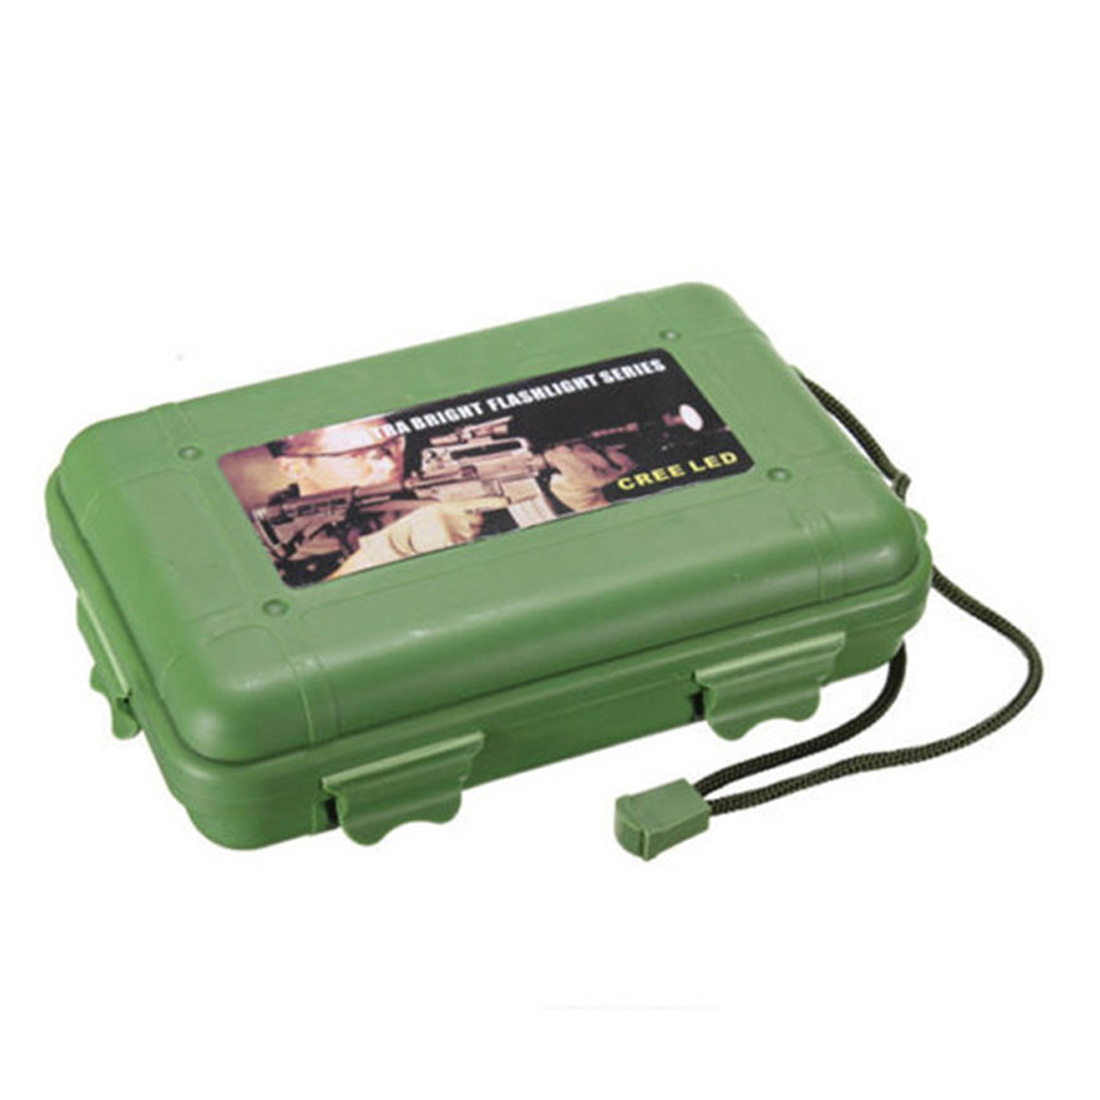 Universal Waterproof Anti Fall Green Plastic Storage Box Suitable For Flashlight Light Torch Lamp With 13 X 8 X 3.5cm